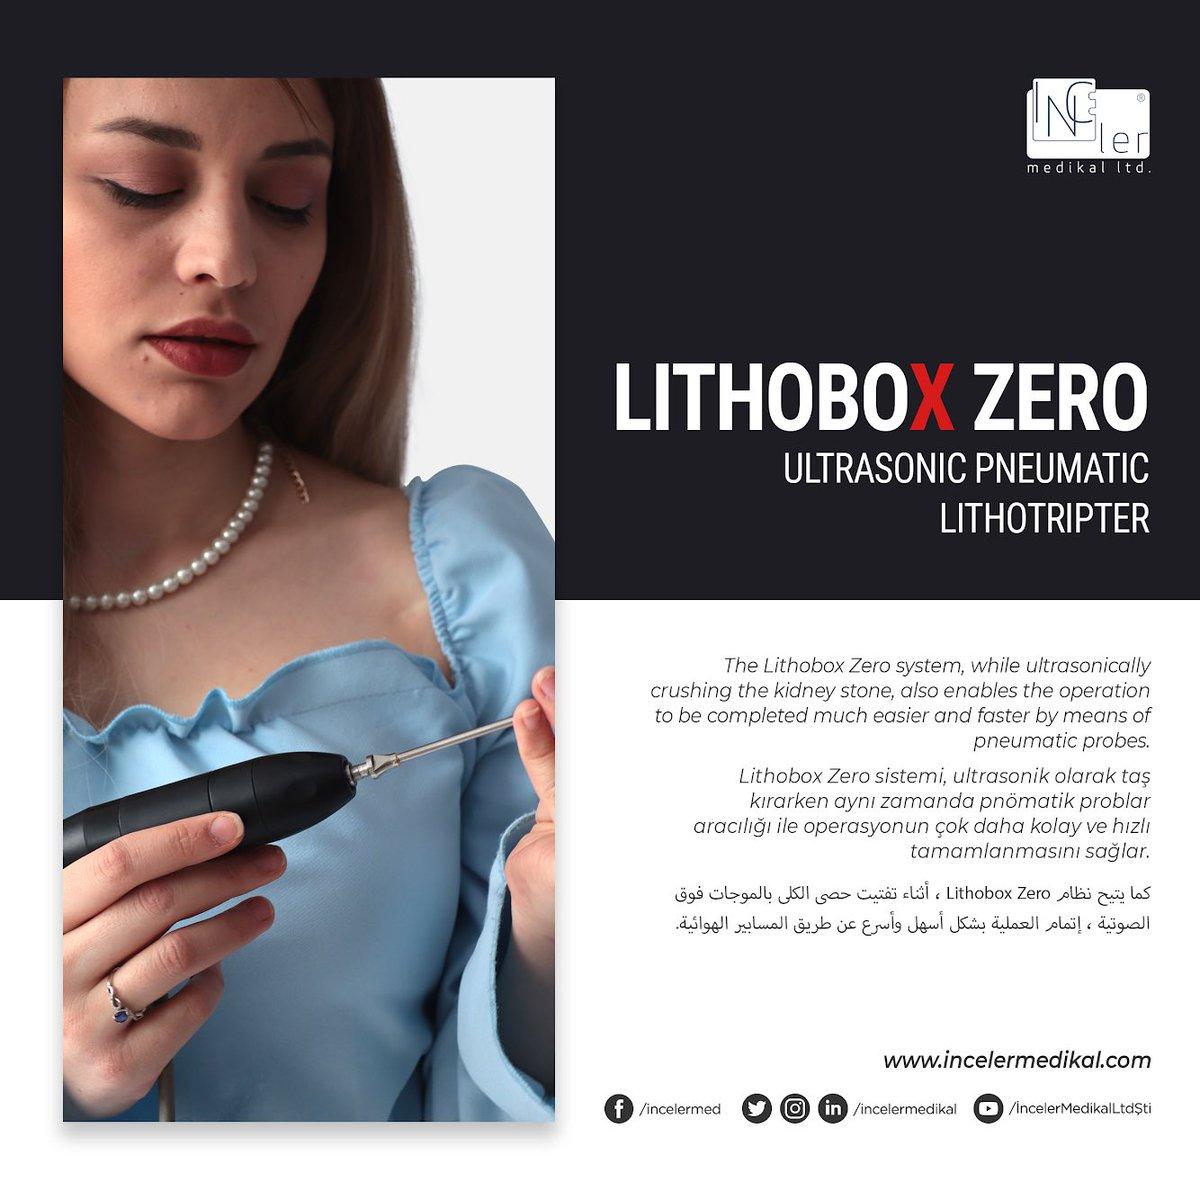 The Lithobox Zero system, while ultrasonically crushing the kidney stone, also enables the operation to be completed much easier and faster by means of pneumatic probes.  #shockwavetherapy #pcnl #Lithotripsy #urology #combineLithotripsy #kidneystones #urologyist #urologistpic.twitter.com/YqDRHiAwkt